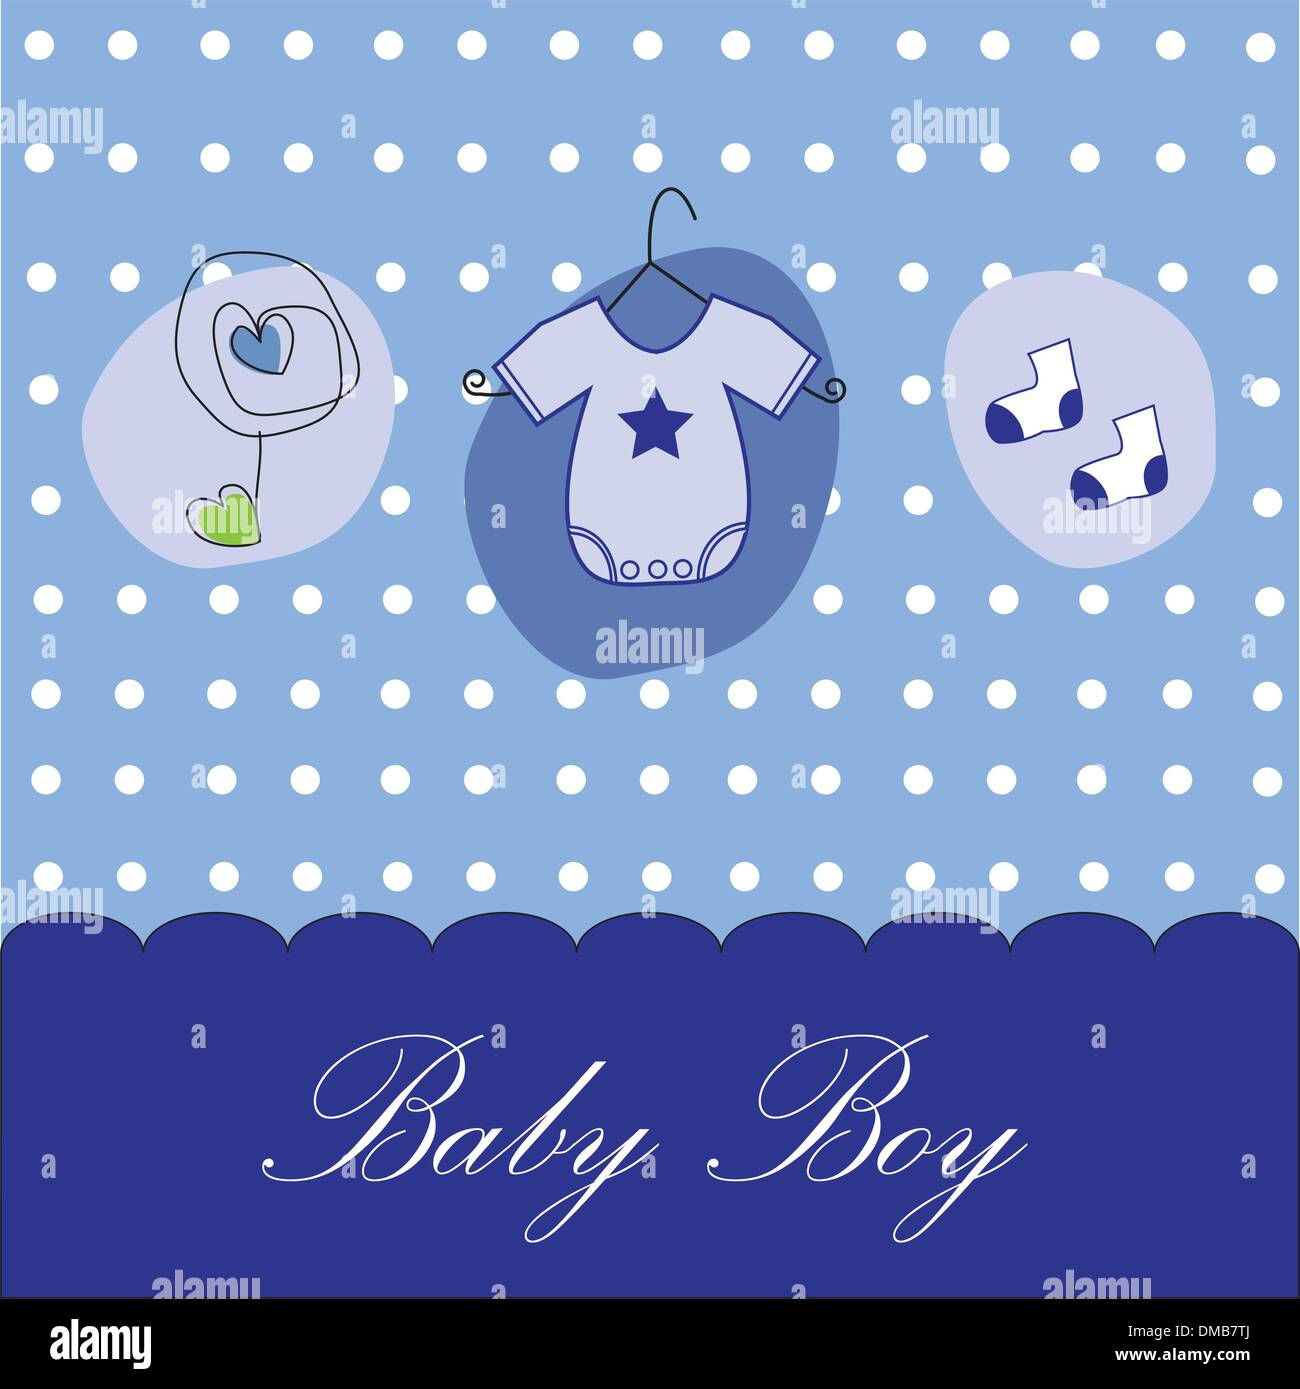 Baby Boy Background - Stock Image